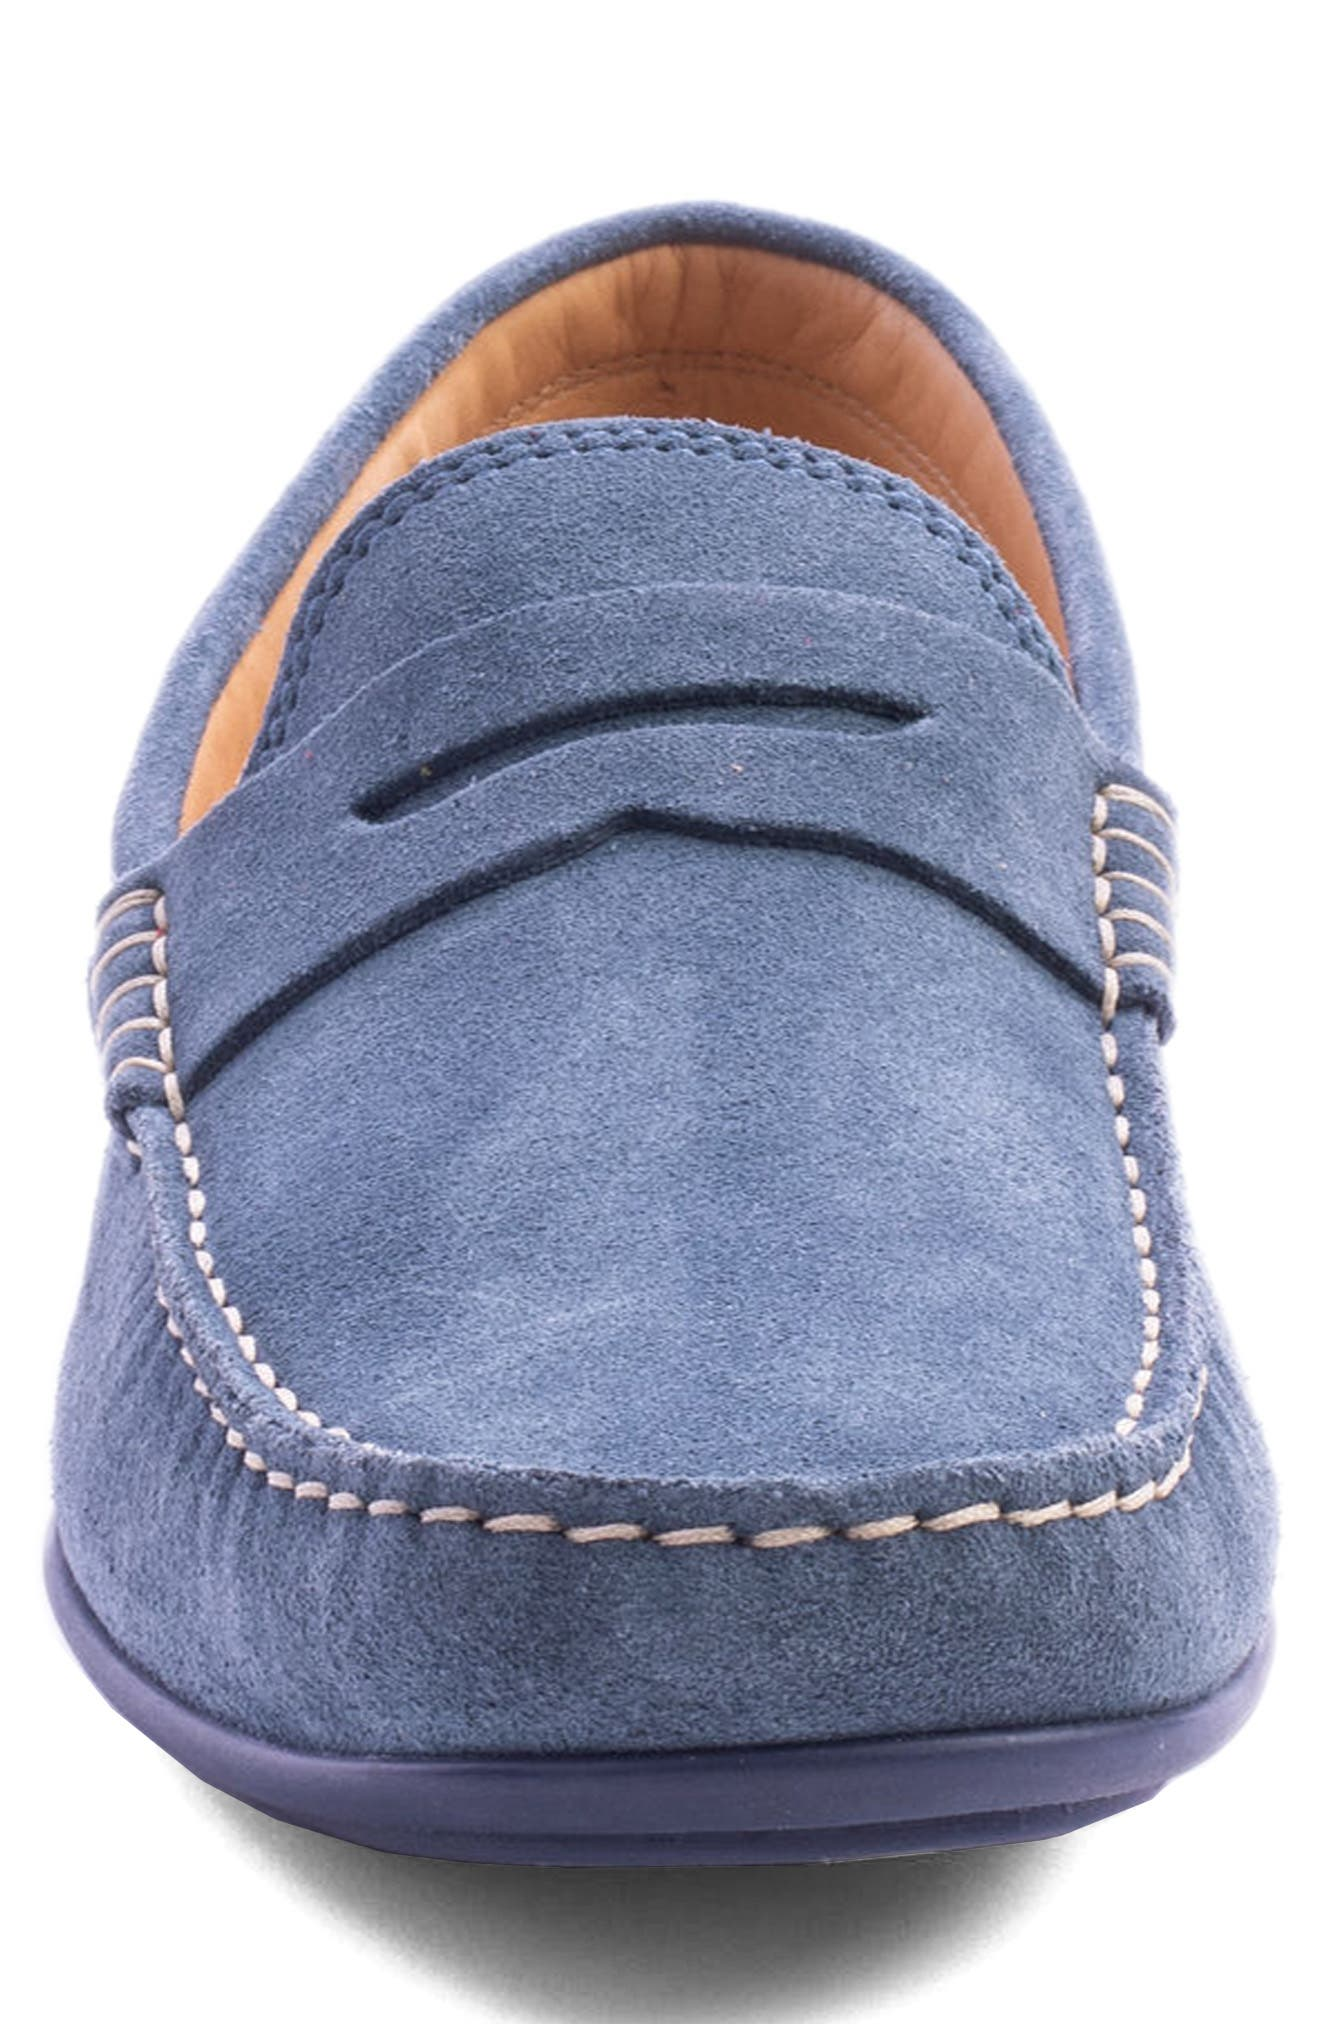 'Parkers' Penny Loafer,                             Alternate thumbnail 4, color,                             Indigo